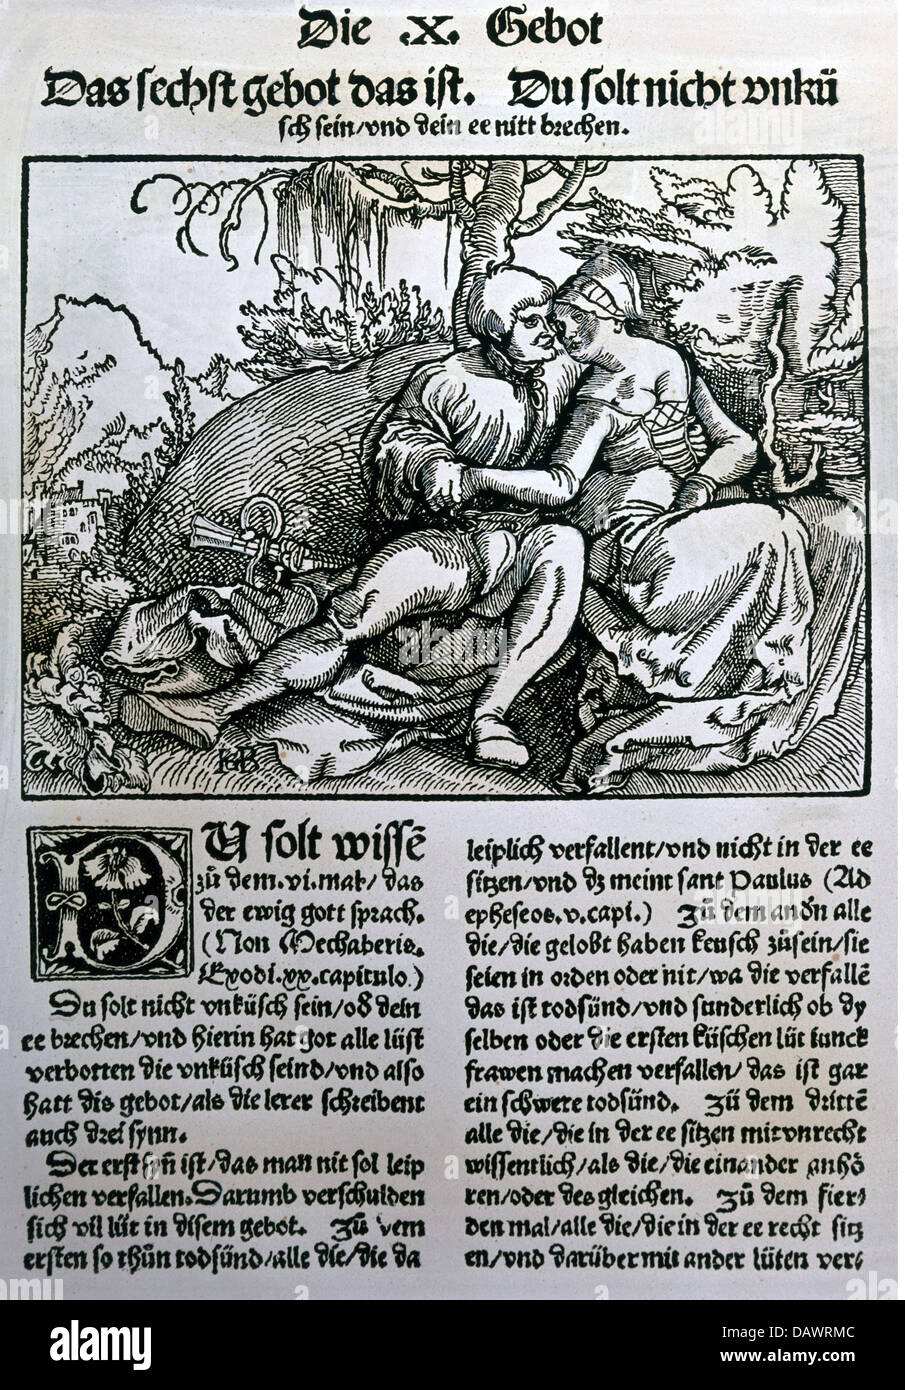 people, couple, lovers, woodcut by Hans Baldung Grien, 'Die zehen gebot erclert und usgelegt', 6th Commandment, - Stock Image